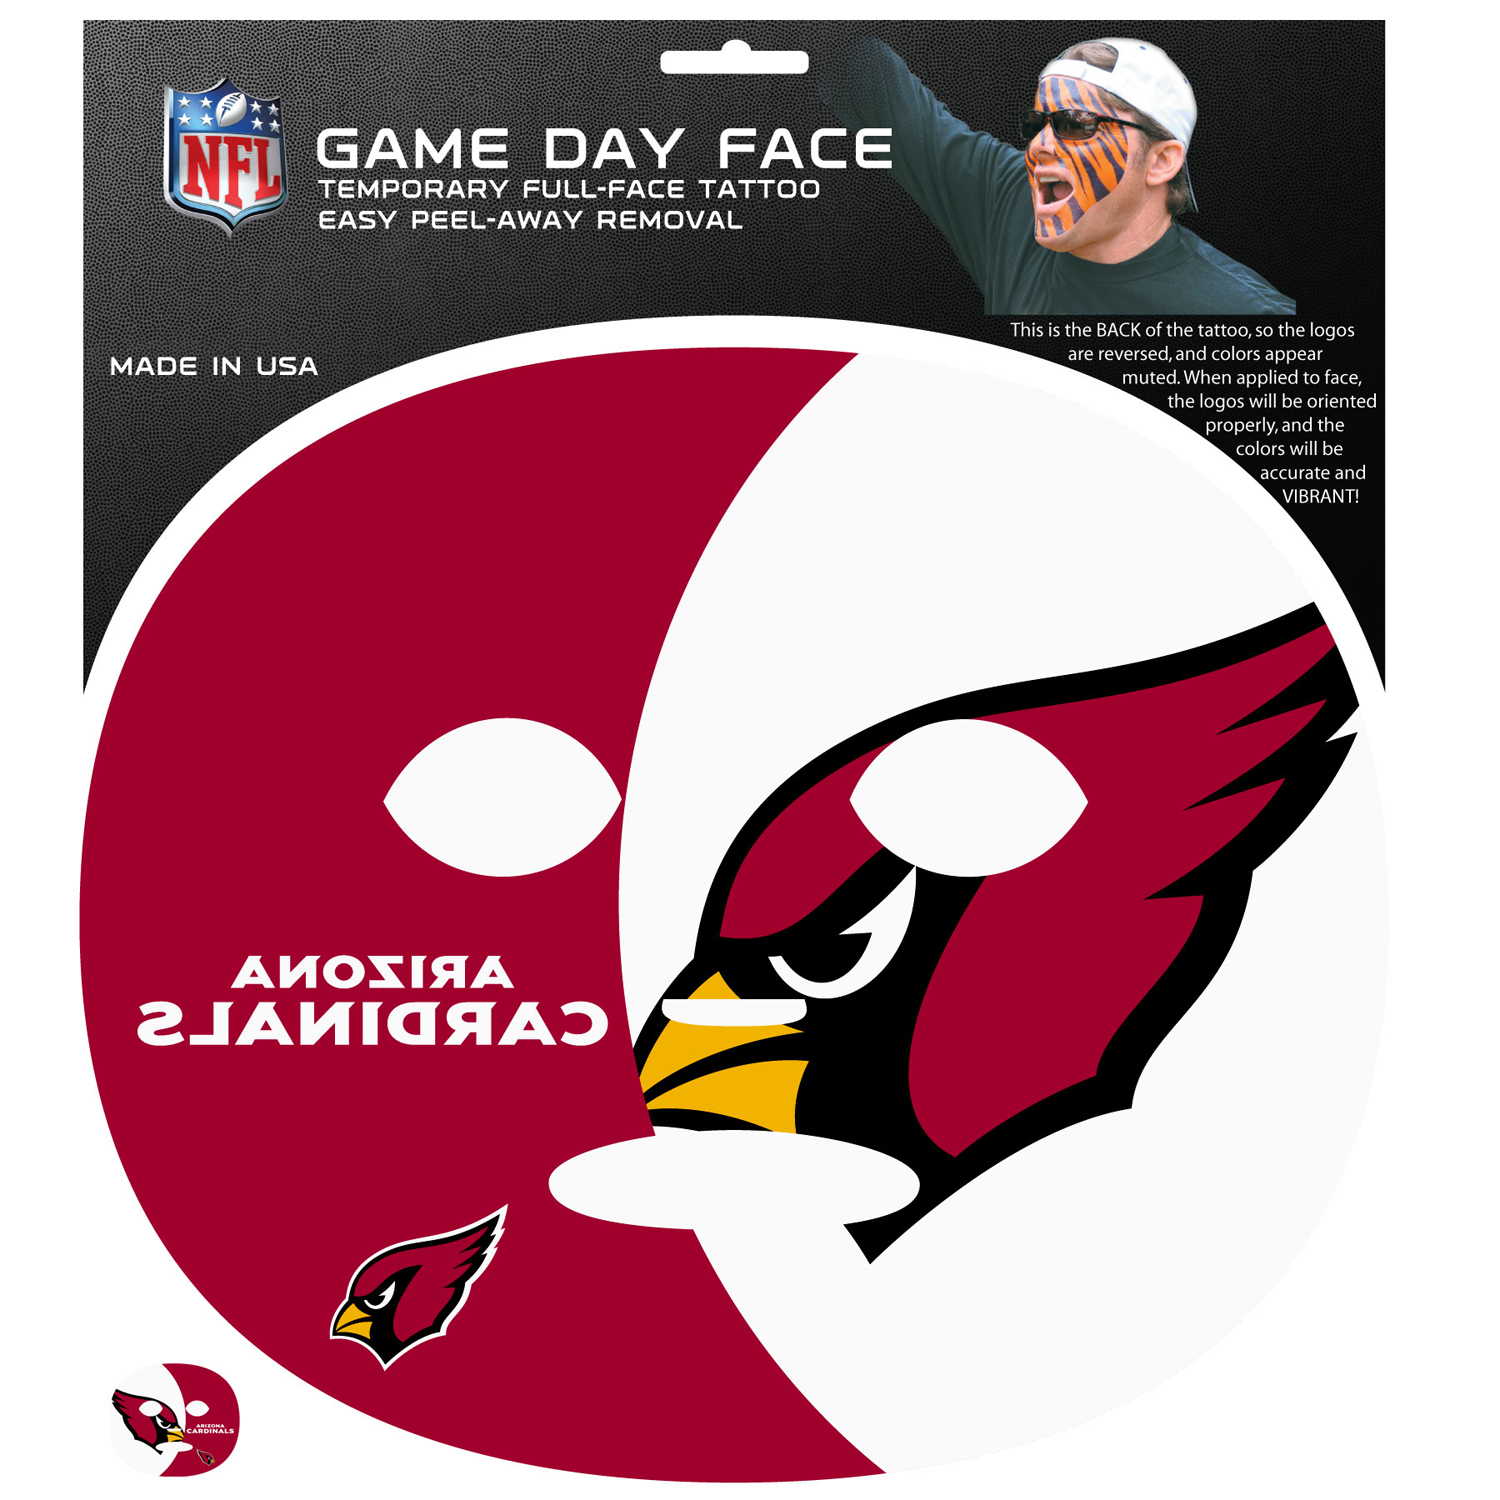 Arizona Cardinals Game Face Temporary Tattoo - No better way to show your Arizona Cardinals pride than by painting your face. Siskiyou's Game Day Face Temporary Tattoo isn't your typical face paint. It is a water based application that doesn't smudge, smear or sweat off  while you're wearing it and easily peels off after you're done celebrating your team's big Win! The temporary tattoo is large enough to trim down to fit your face.  Our Game Day Face Temporary Tattoo's are fun for fans of all ages. You may have seen our product before,  these are the same Temporary Face Tattoos as pitched on ABC's Shark Tank.